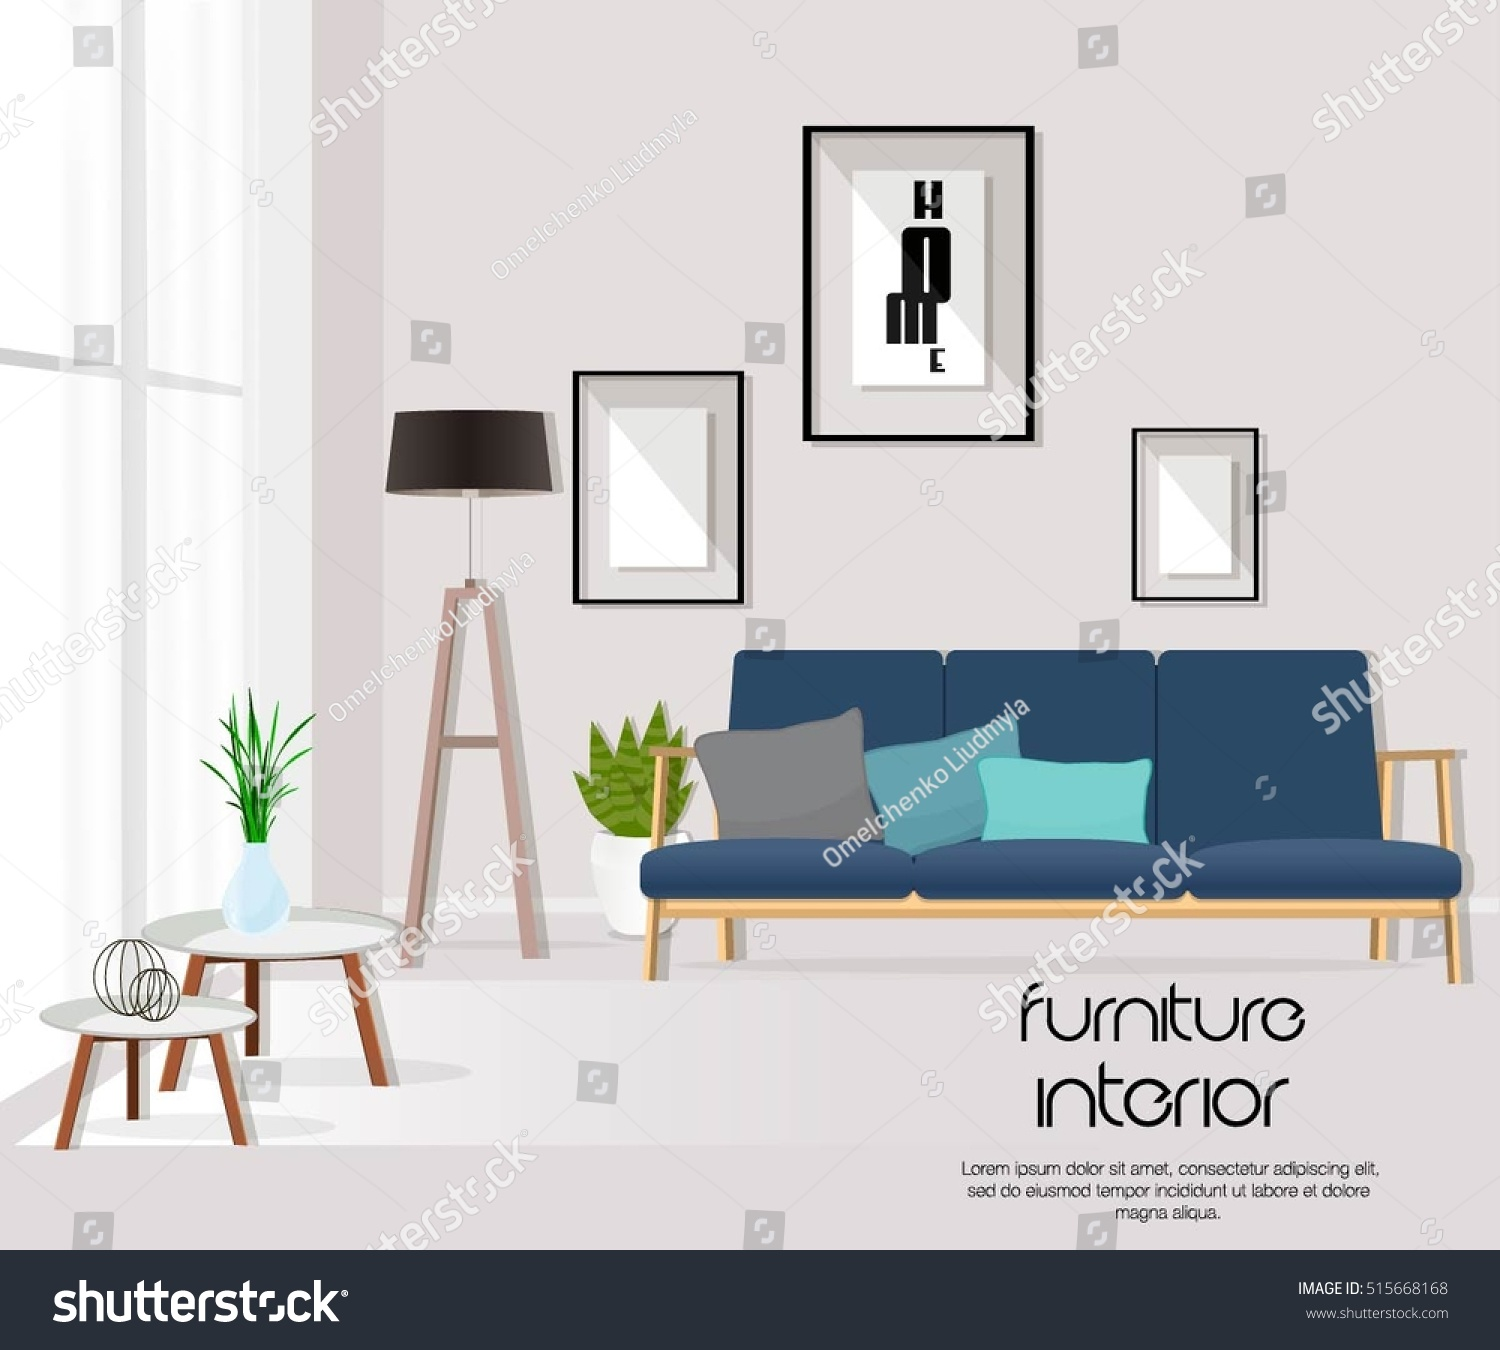 Furniture. Interior. Living room with sofa, table, lamp, pictures, window. Vector.